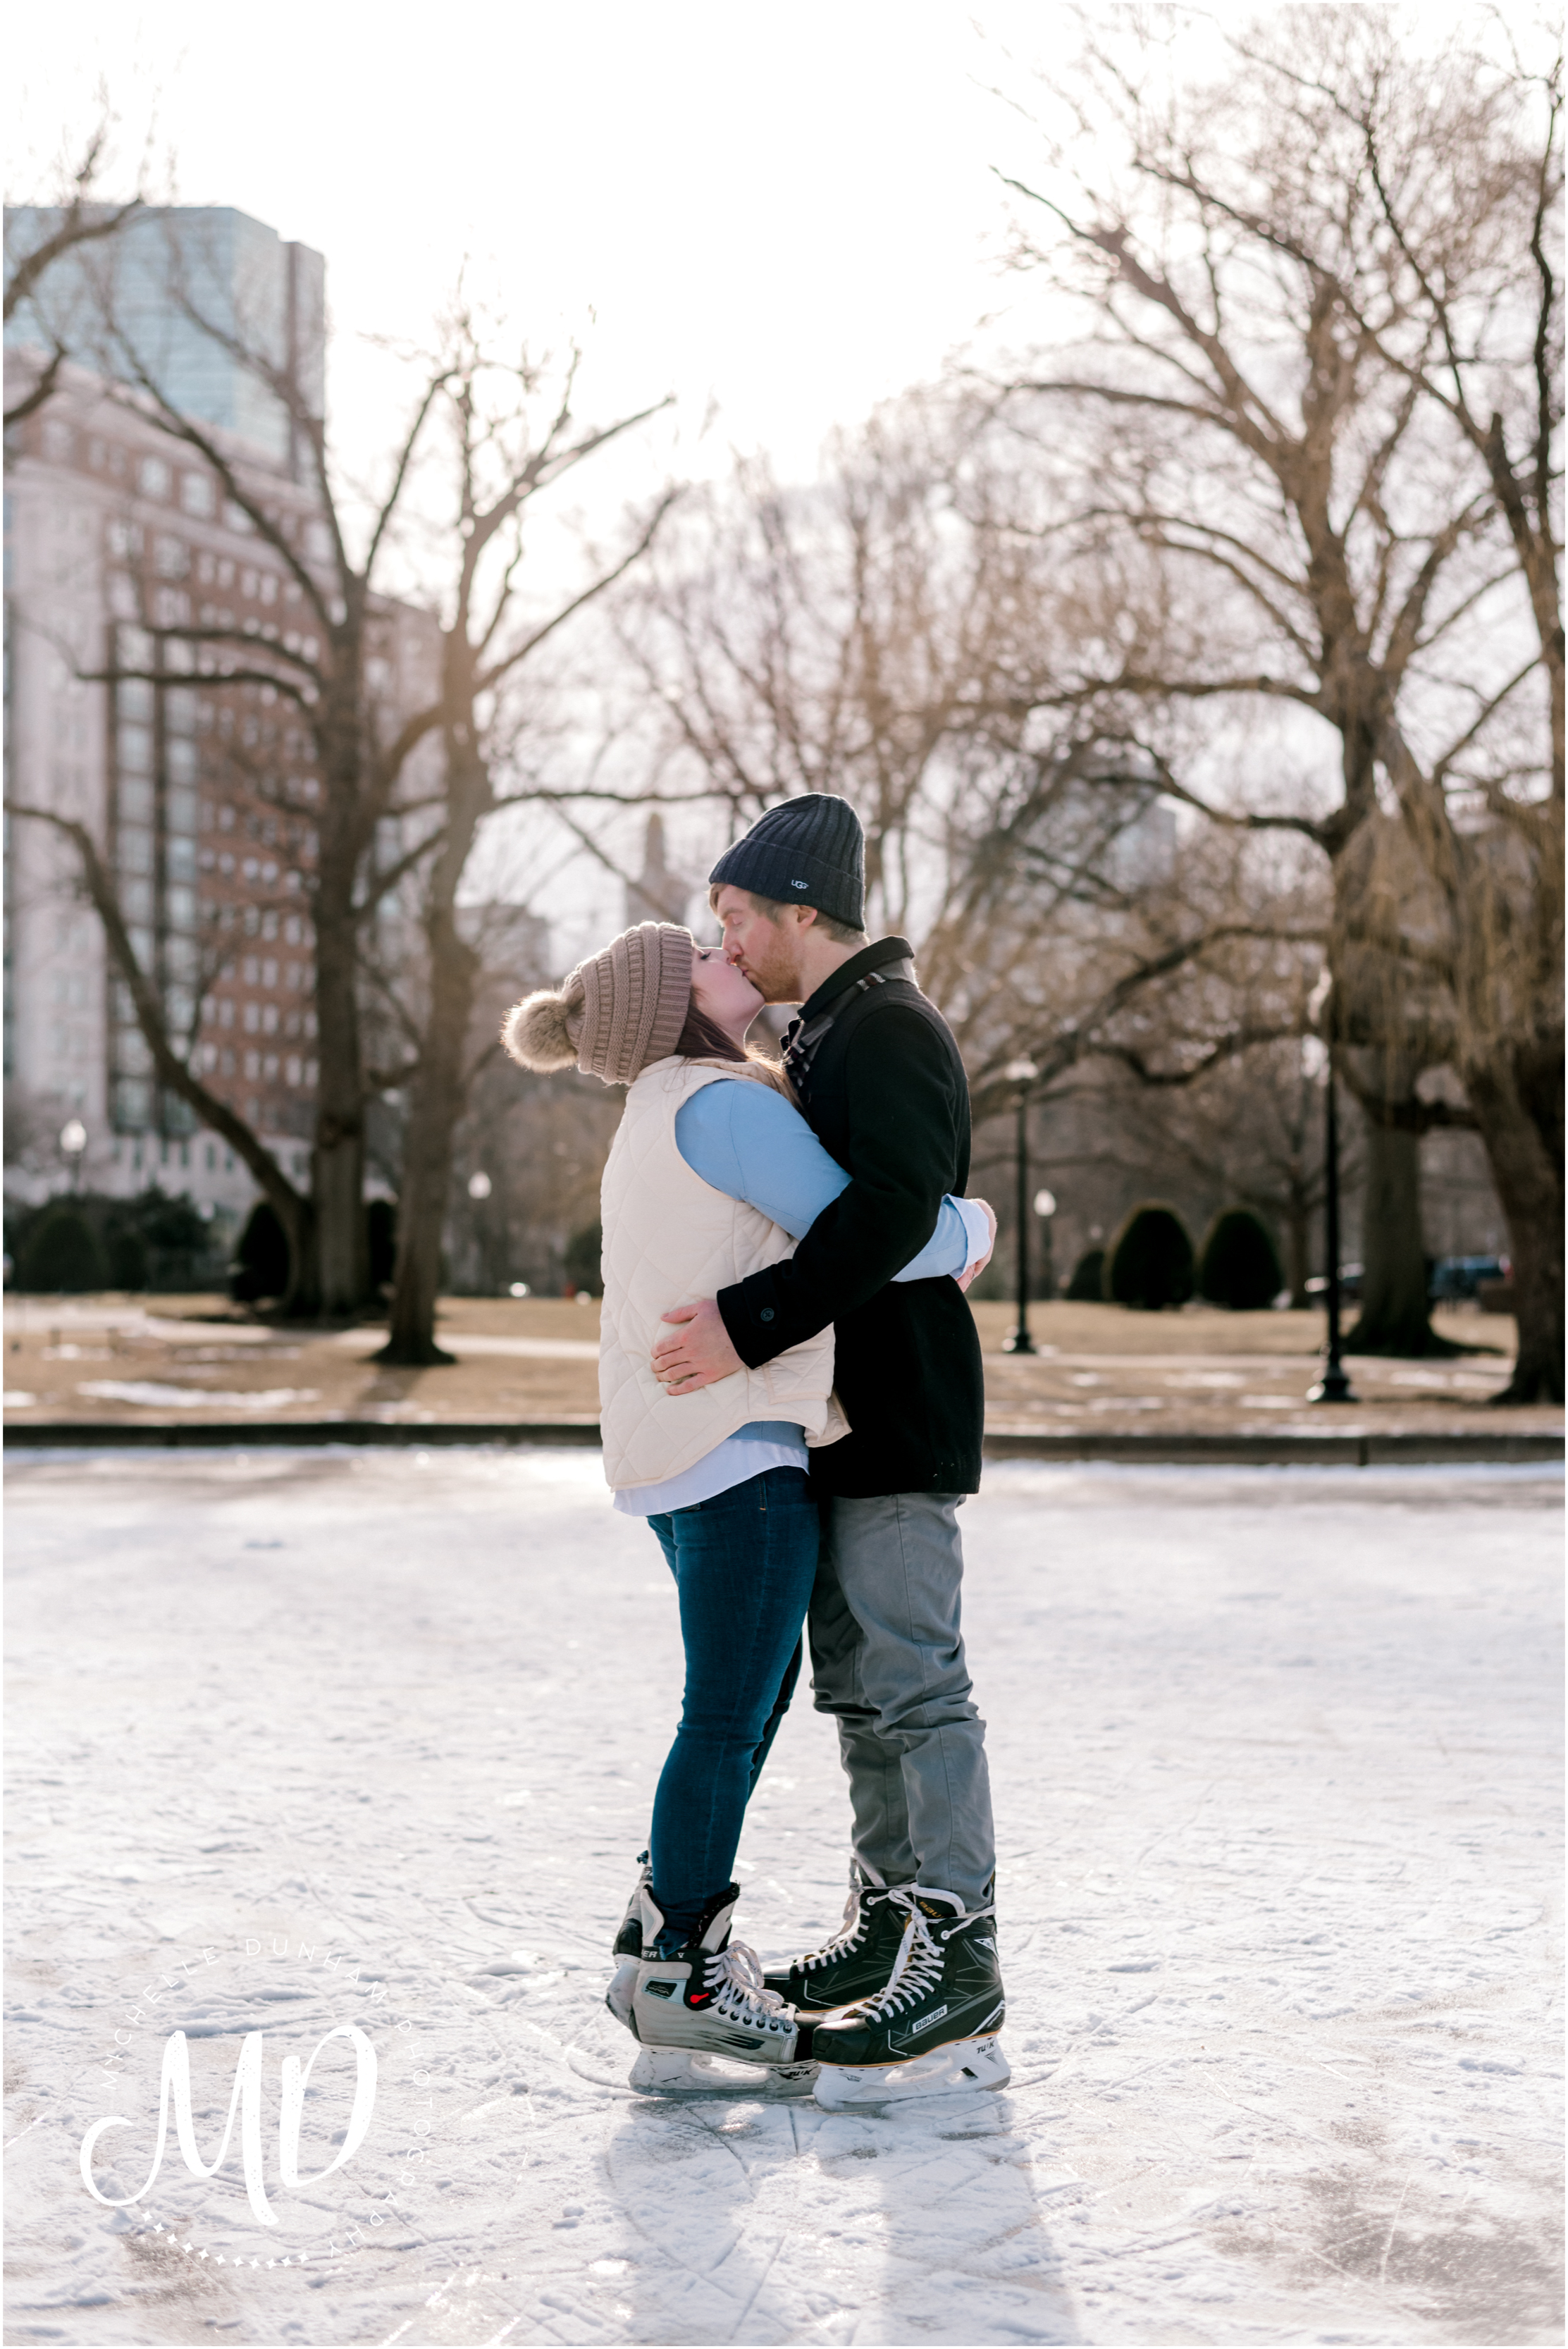 Boston-Public-Garden-Winter-Engagement-Ice-Skating-8.jpg